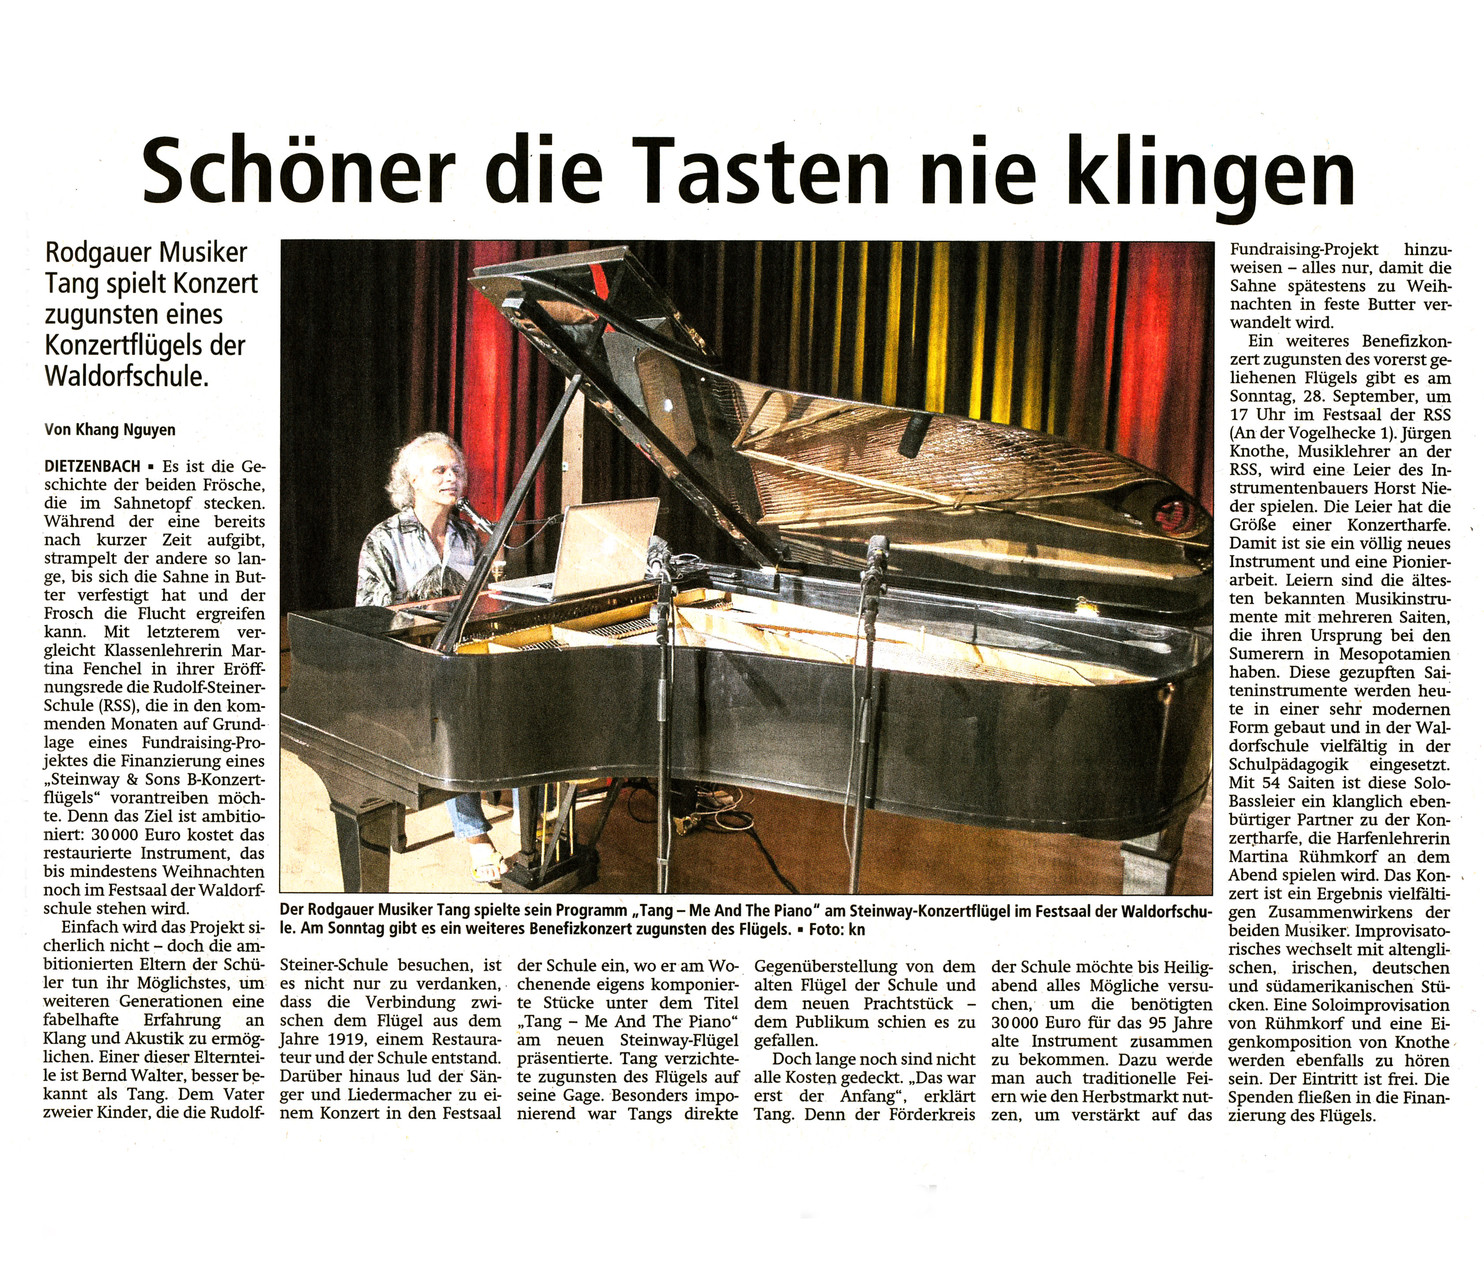 Offenbach Post, 24. September 2014